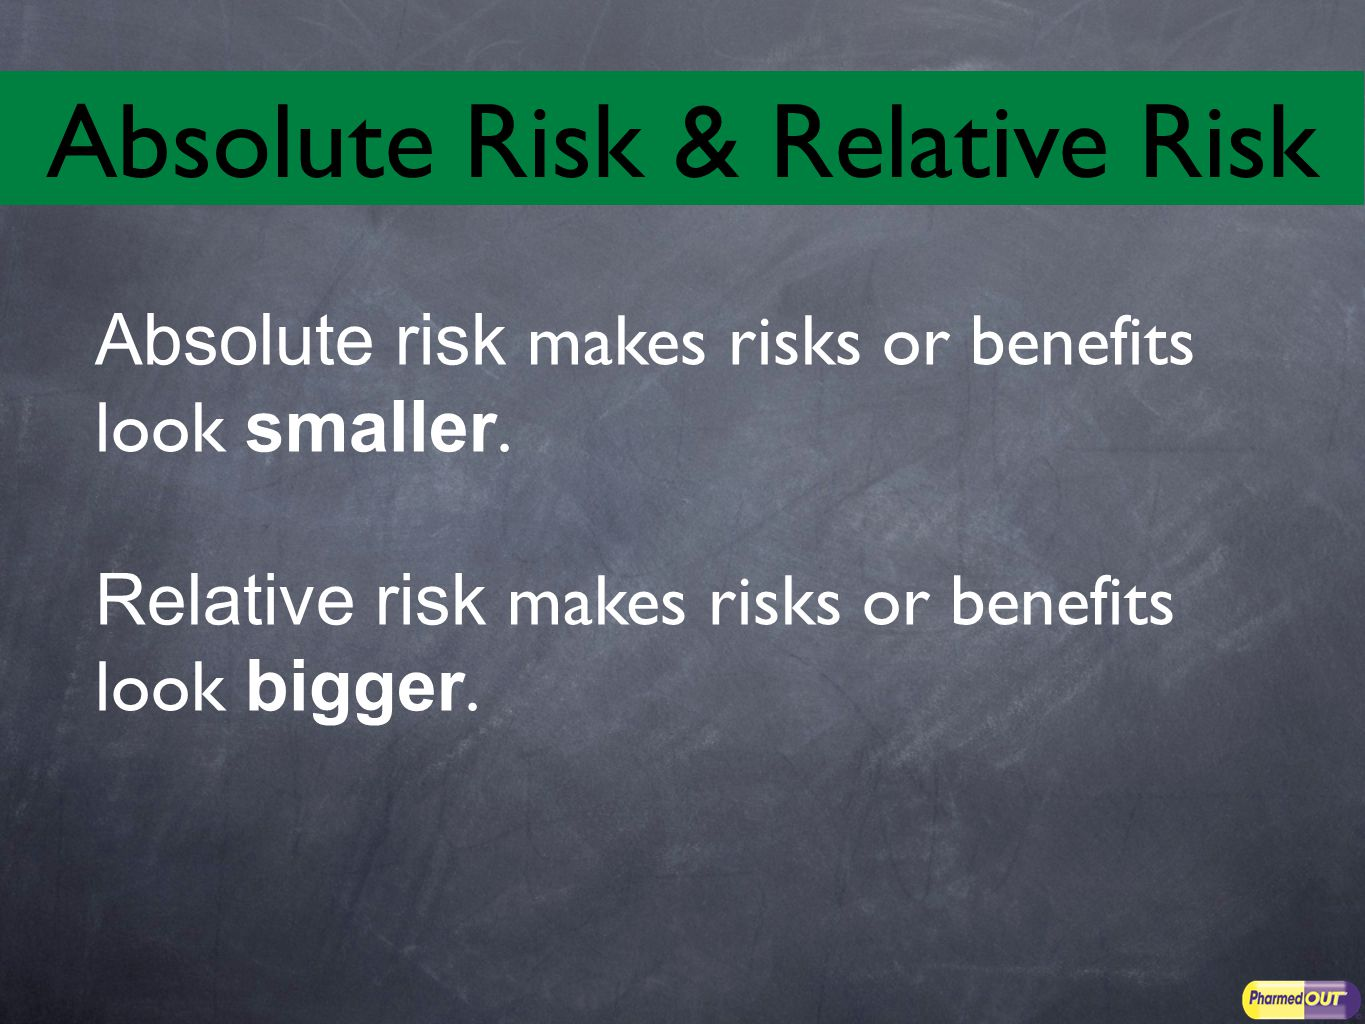 Absolute risk makes risks or benefits look smaller.